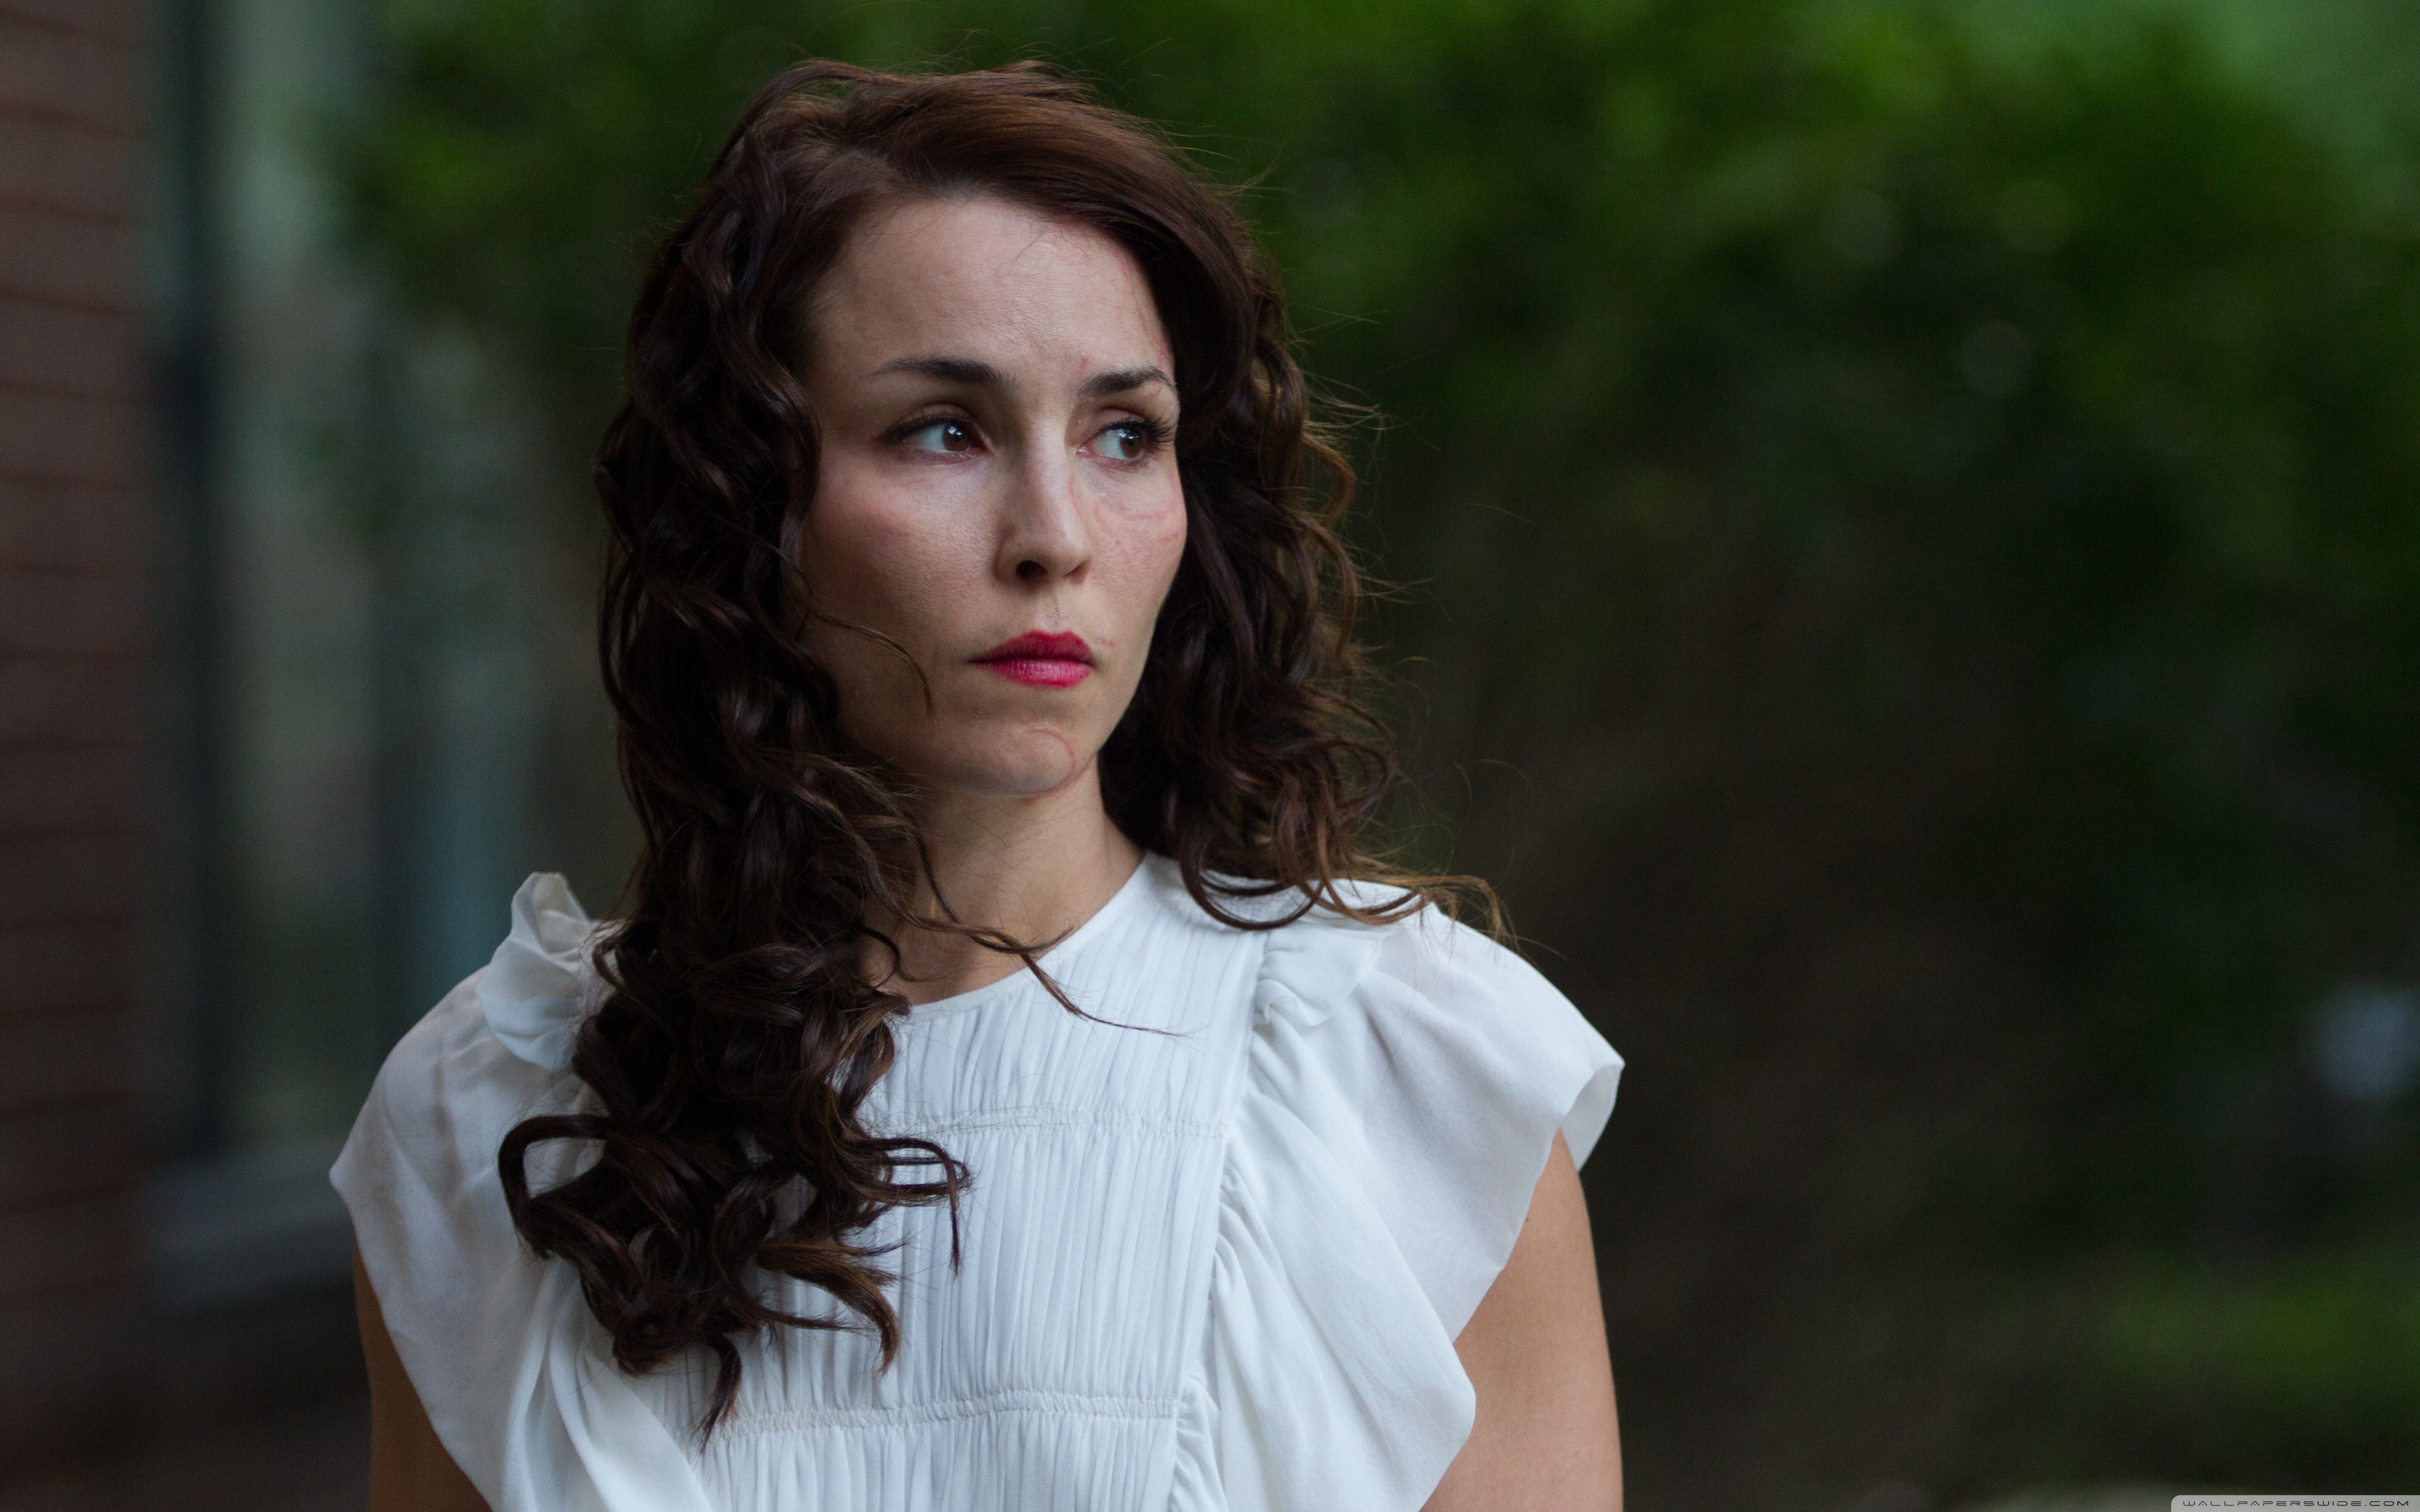 3840x2400 - Noomi Rapace Wallpapers 11